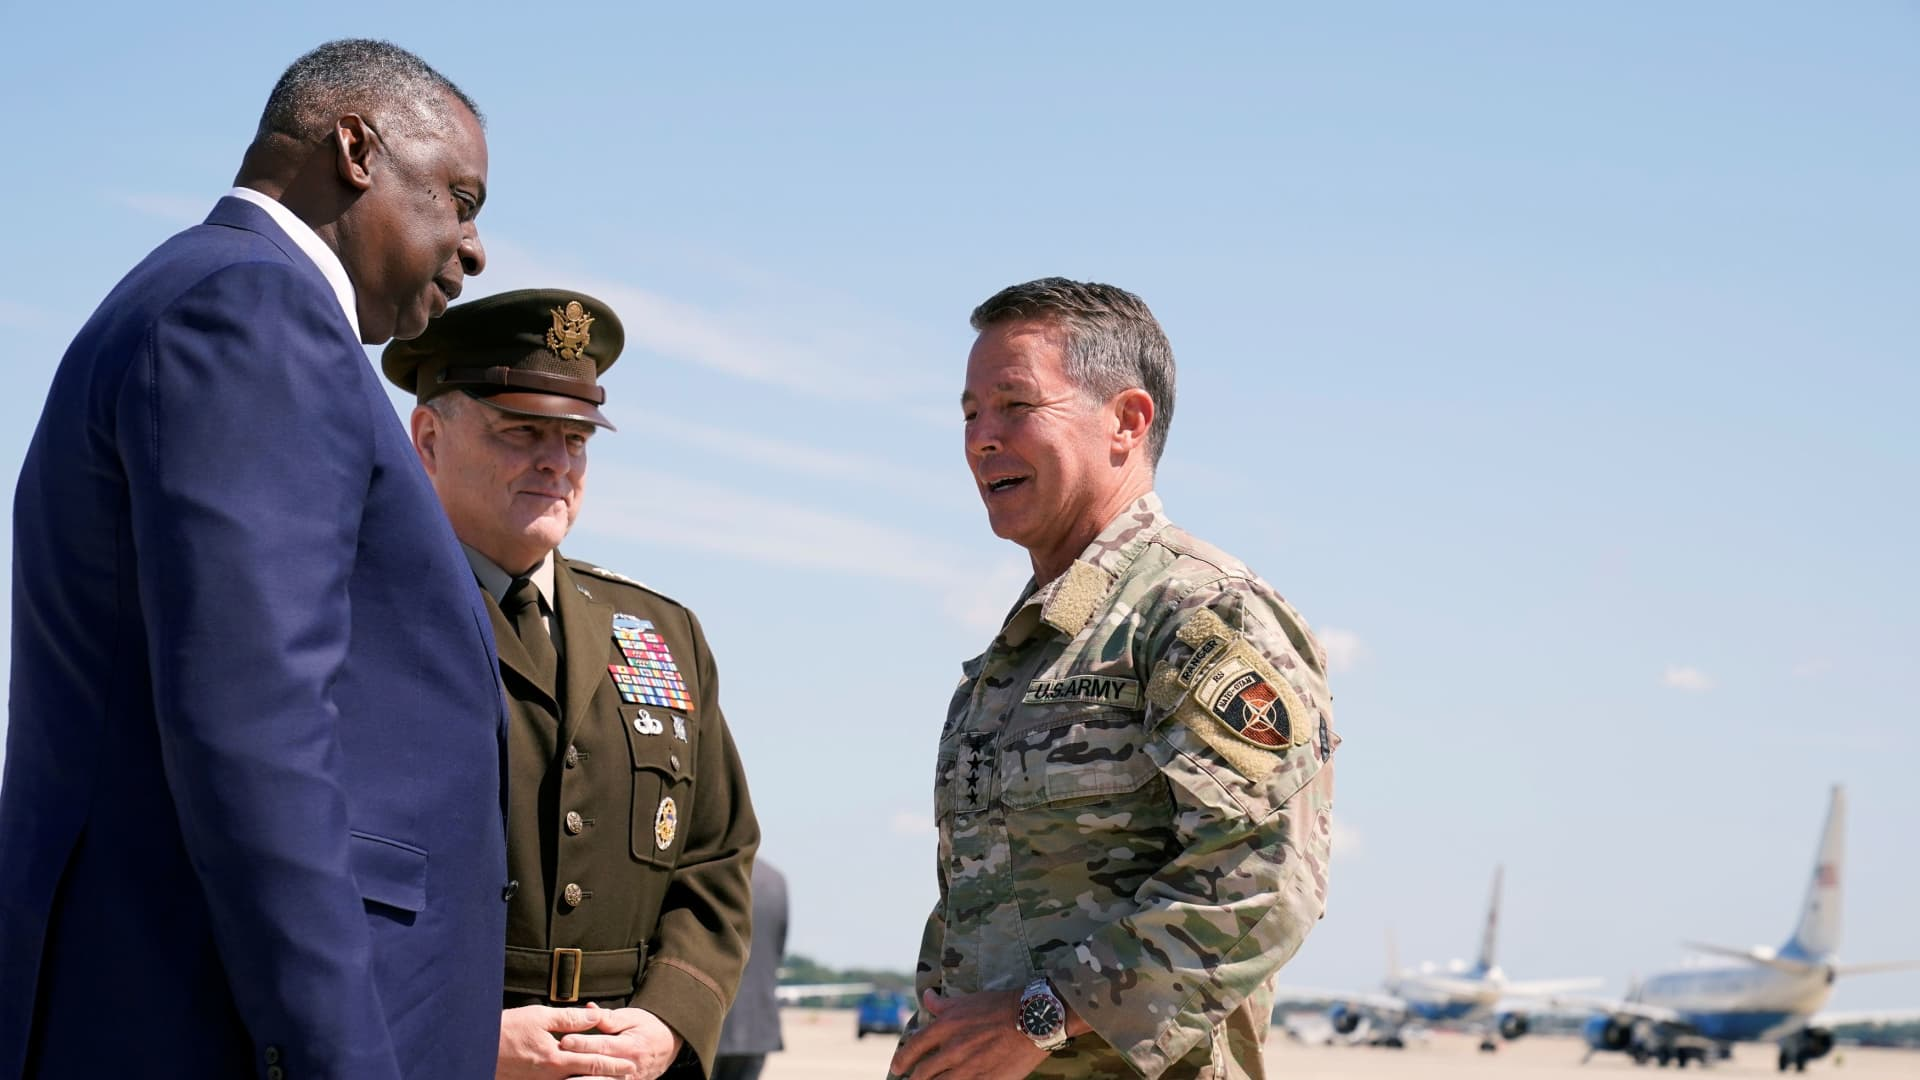 U.S. Secretary of Defense Lloyd Austin, left, and Joint Chiefs of Staff General Mark Milley greet General Austin S. Miller, the former top U.S. commander in Afghanistan, upon his return, at Andrews Air Force Base, U.S. July 14, 2021.